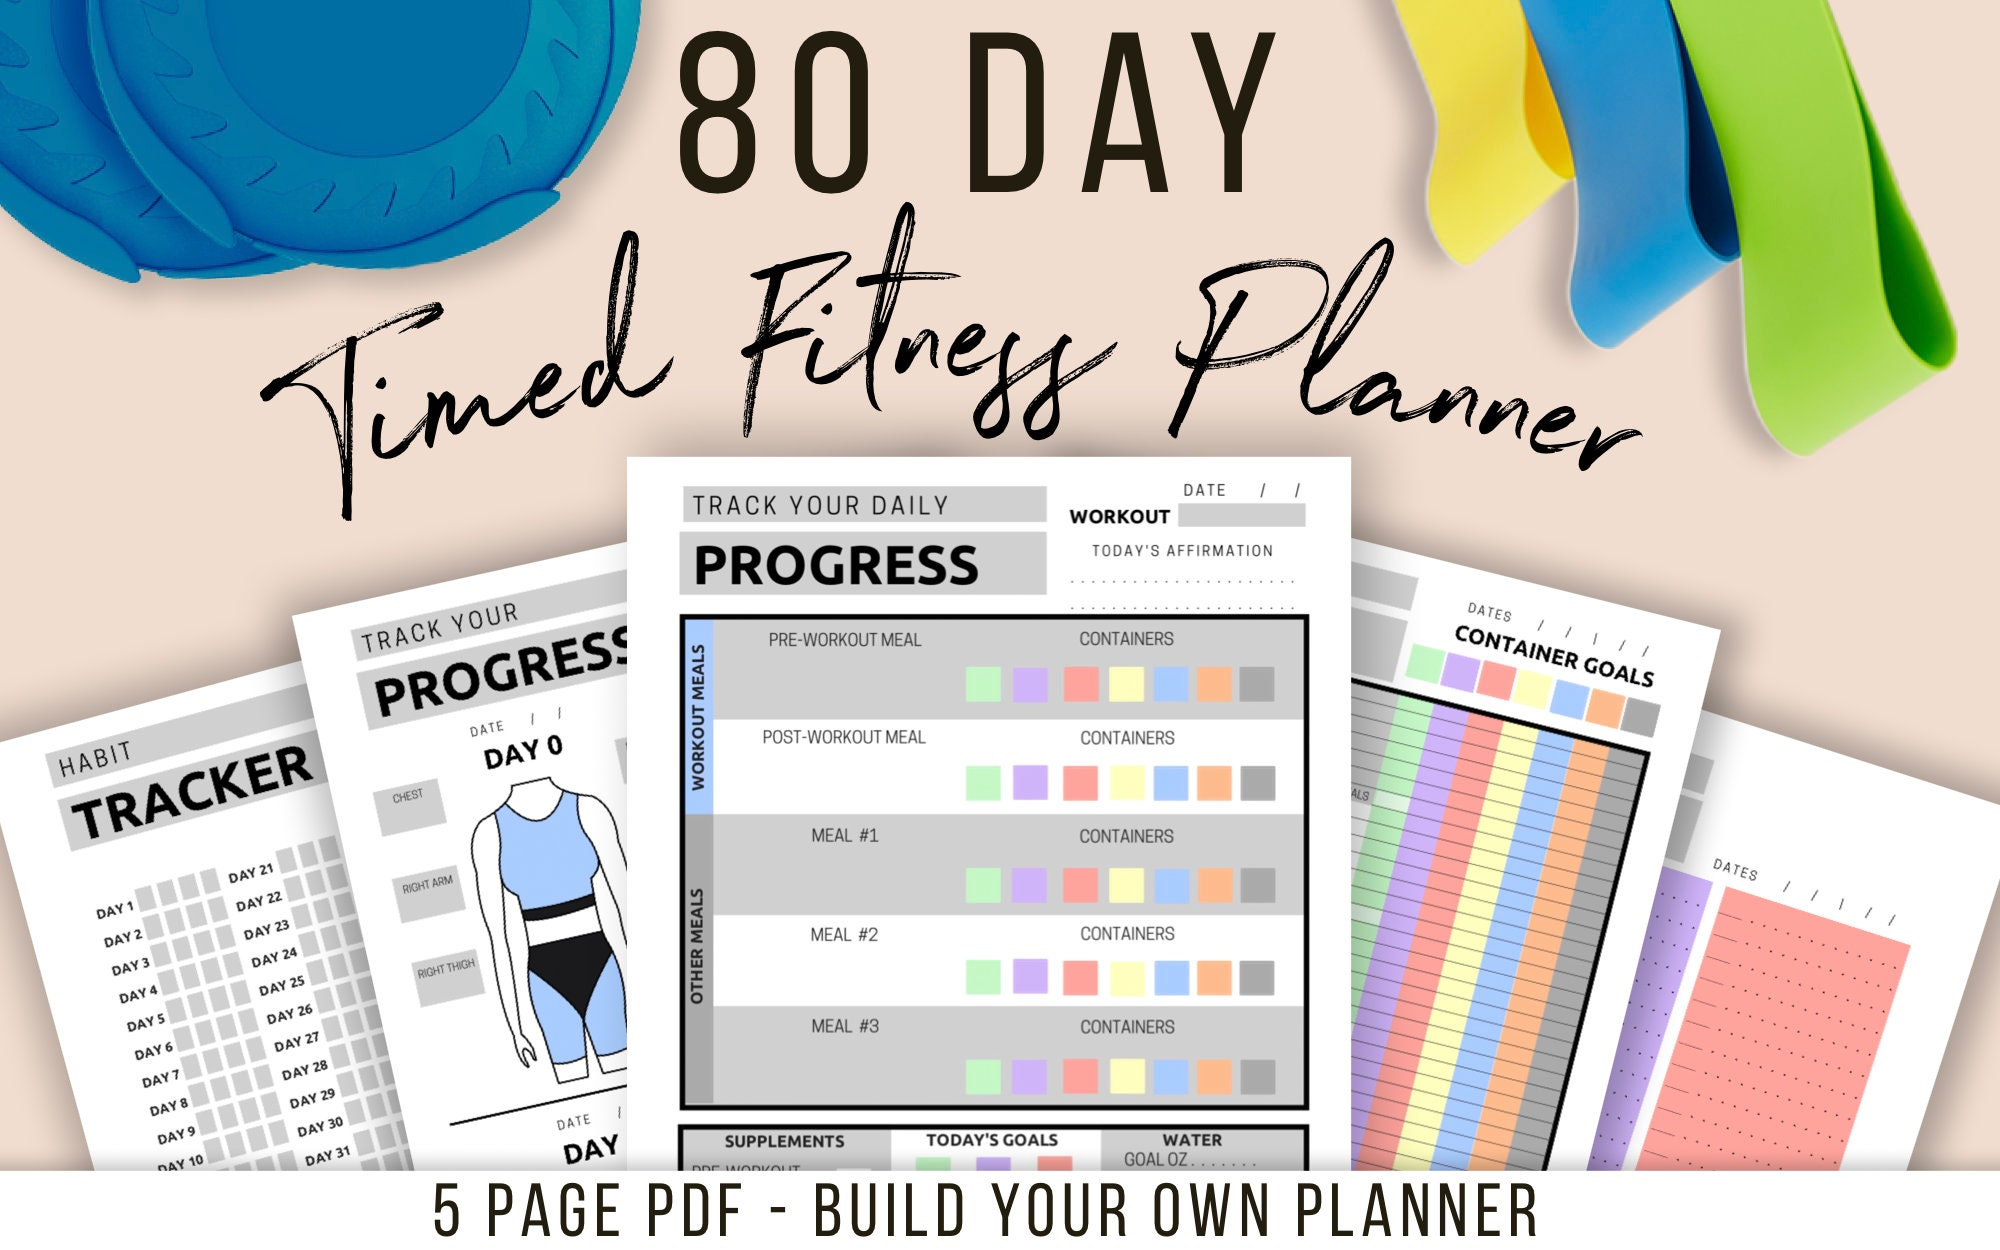 80 day obsession meal plan download